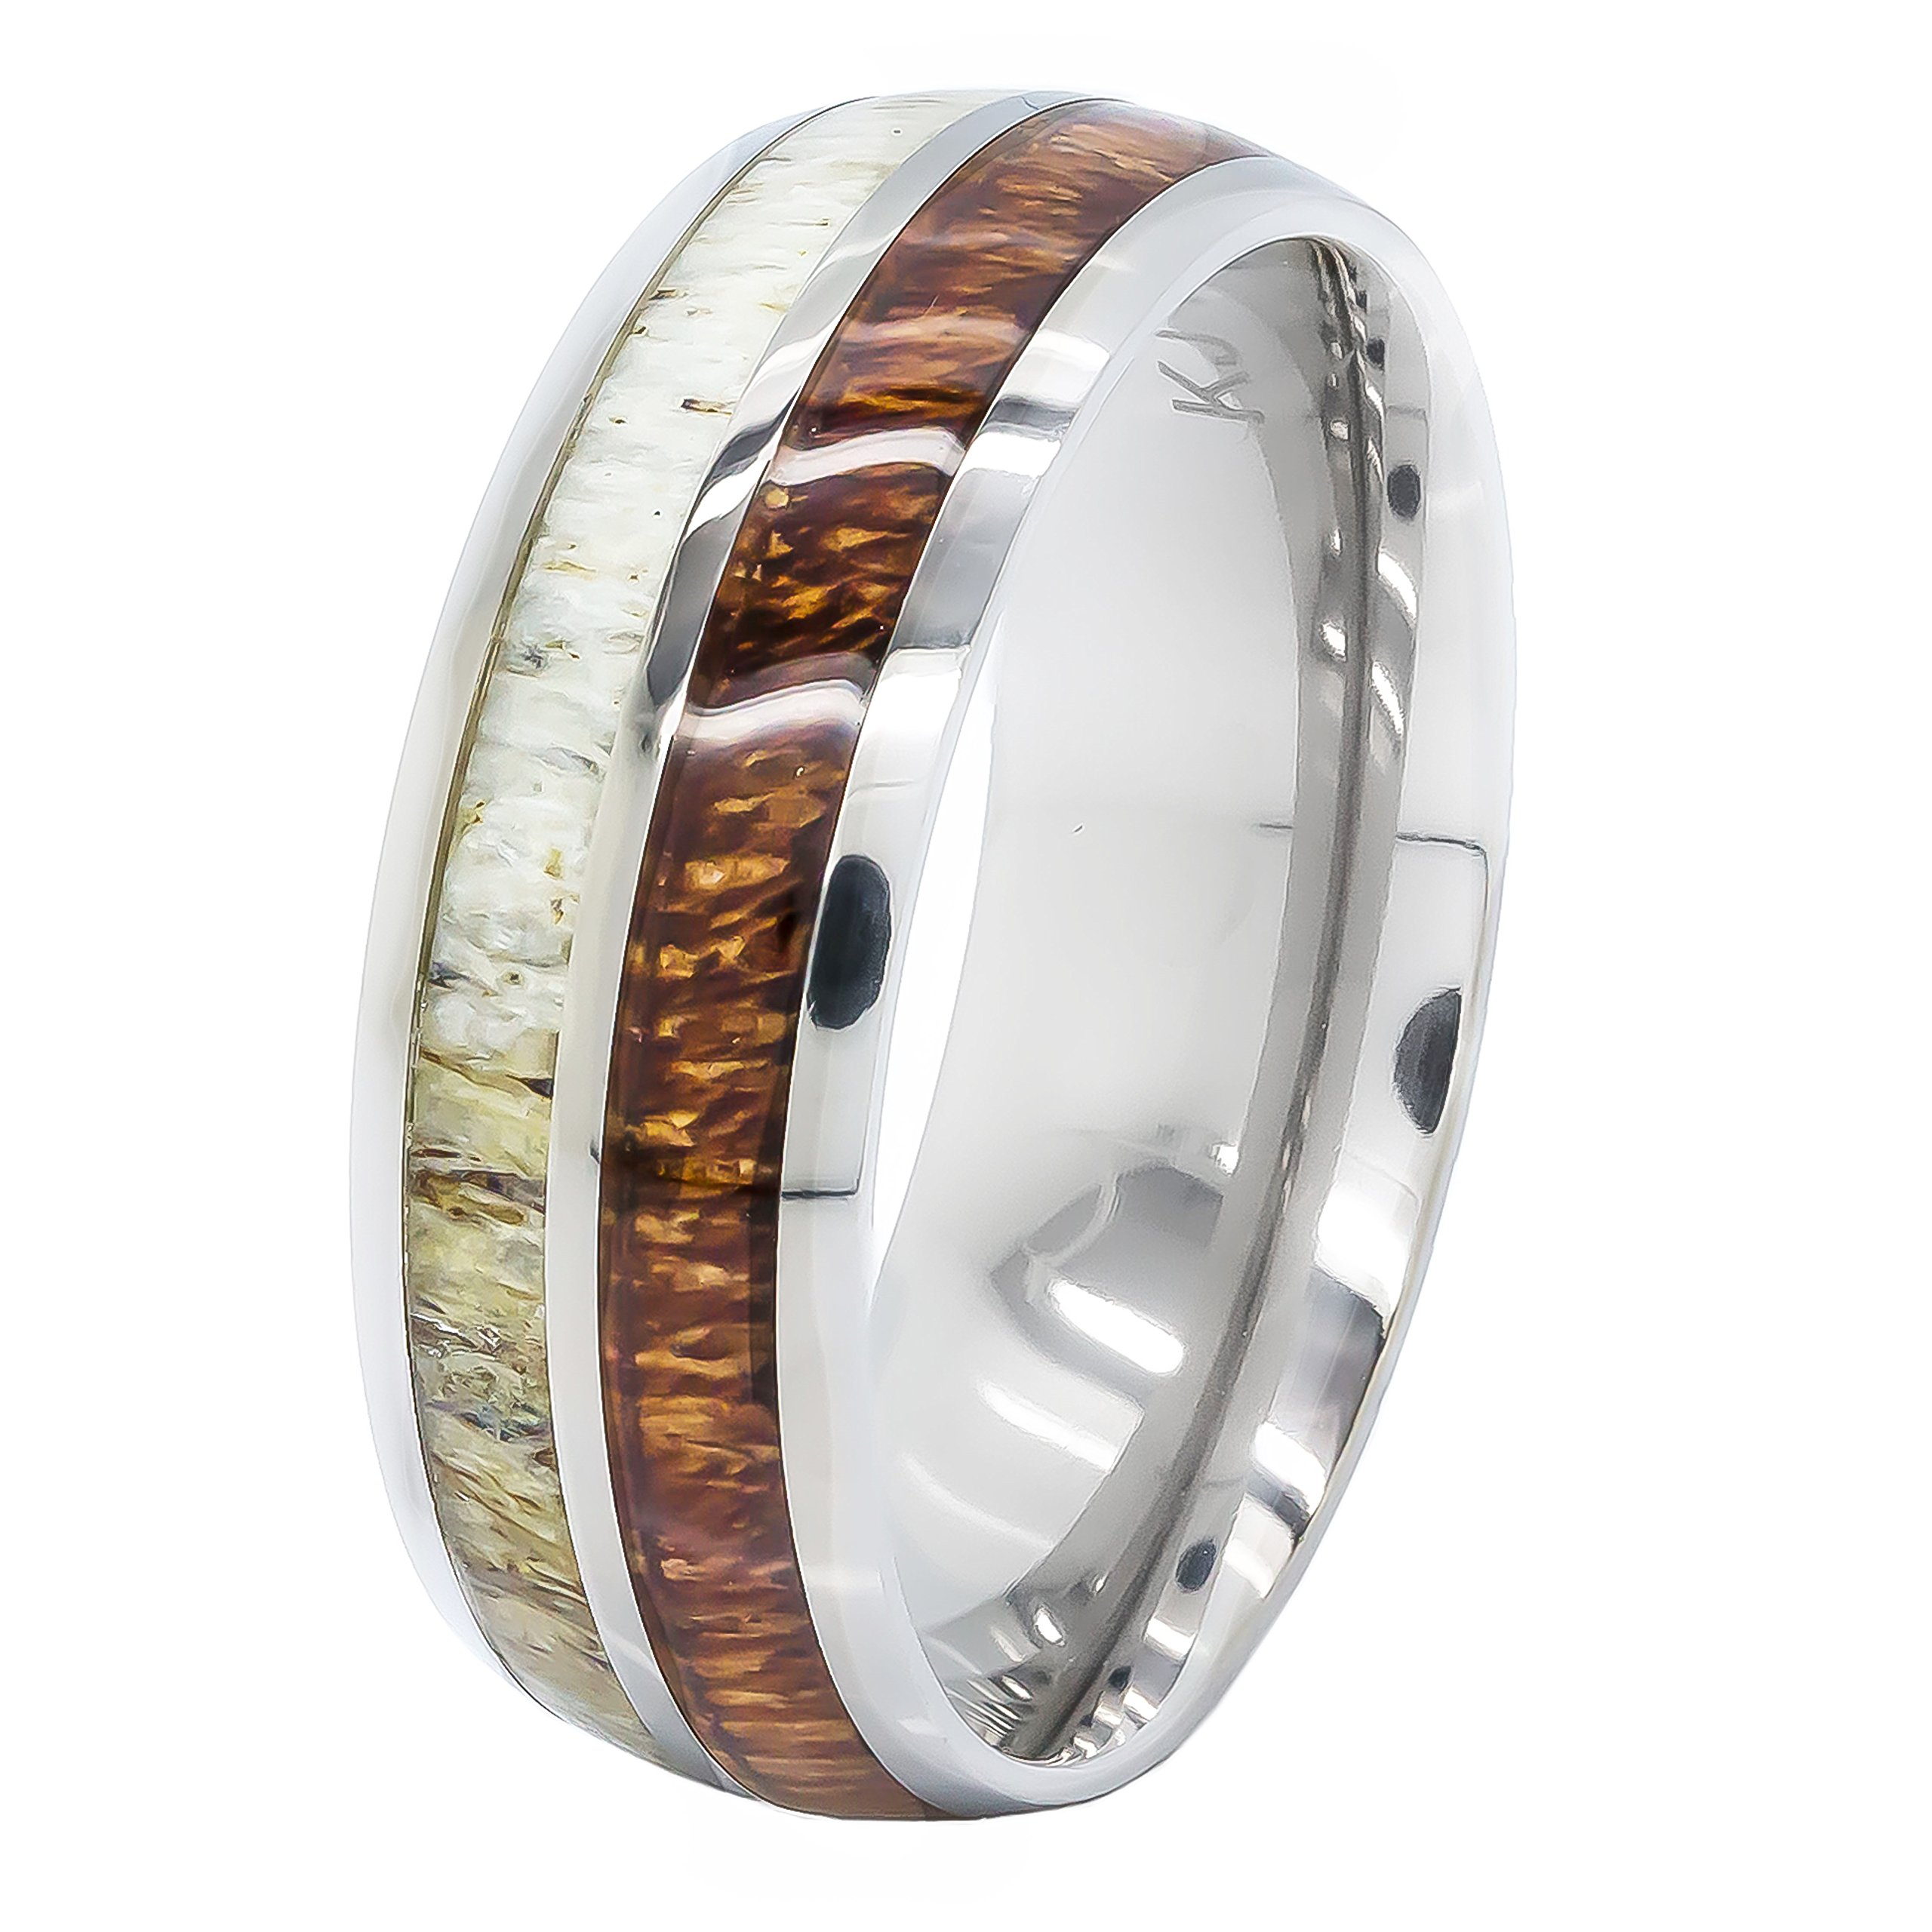 Natural Deer Antler Ring with Koa Wood Inlay - Mens Band, Womens Wedding Ring Titanium Hunter Ring Band